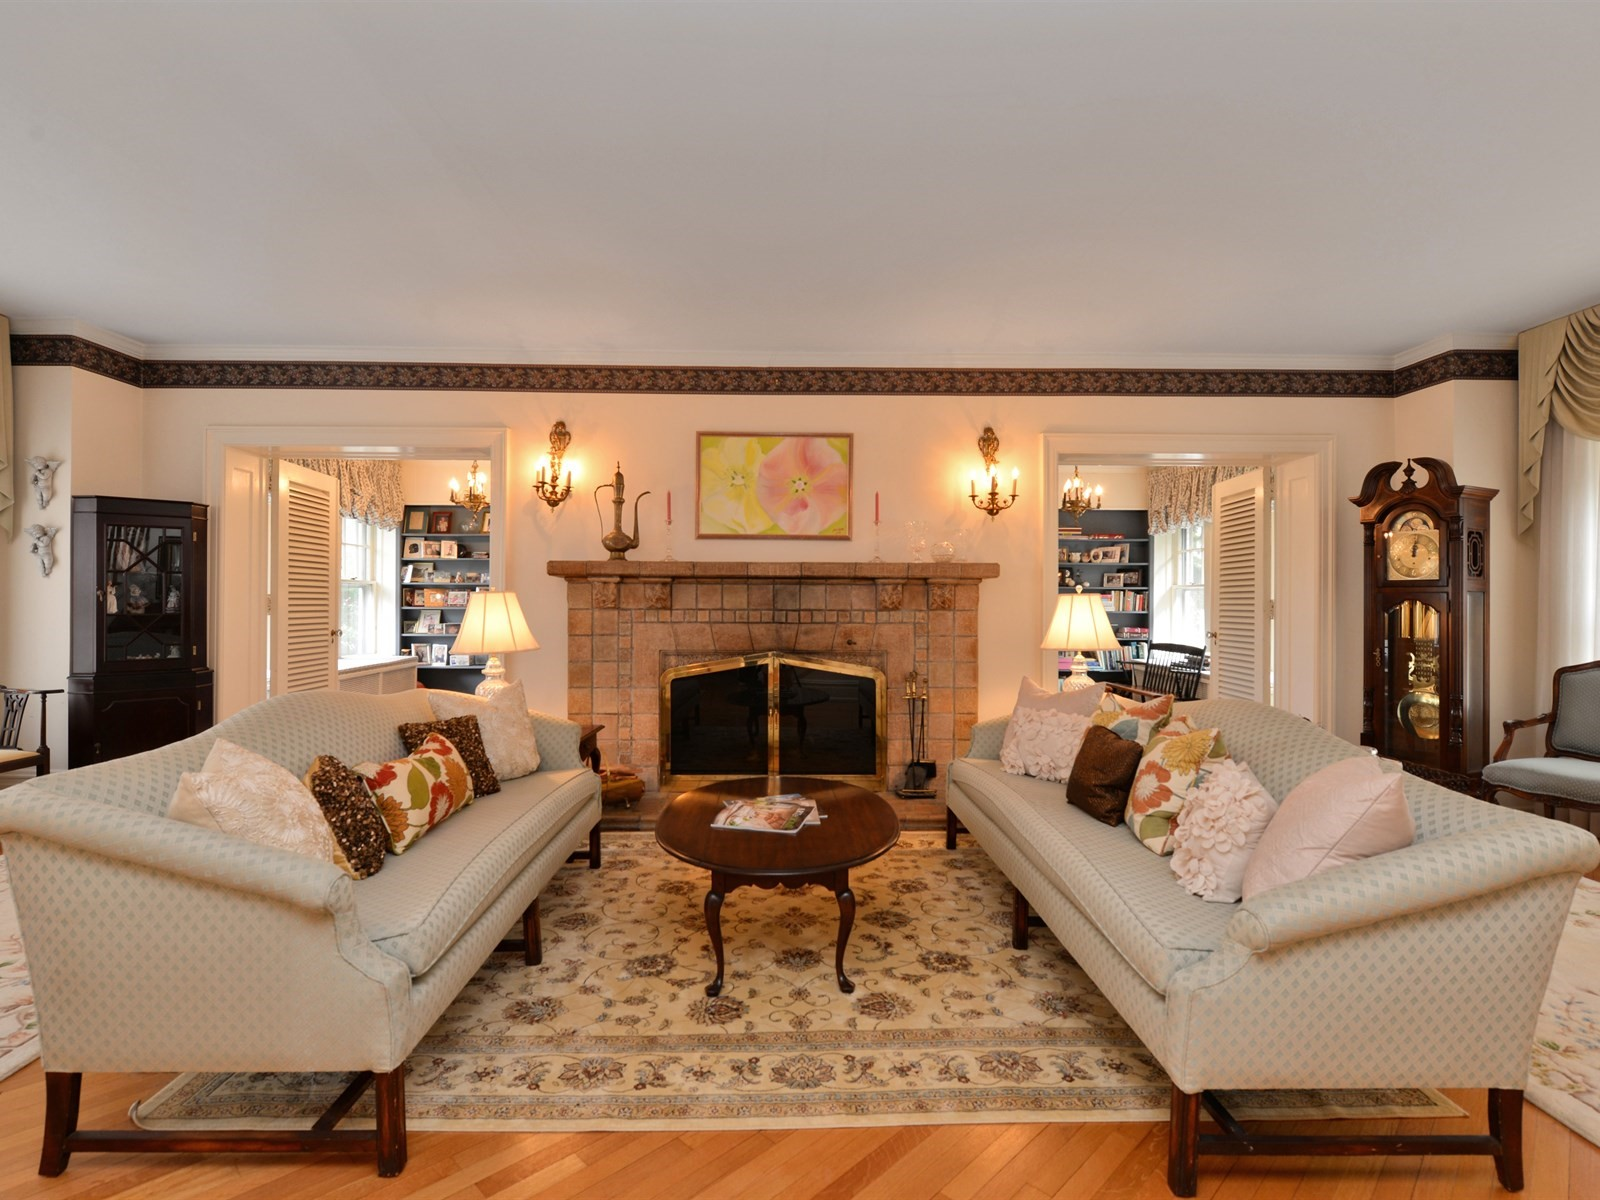 Single Family Home for Sale at Colonial 241 Harvard Ave Rockville Centre, New York 11570 United States